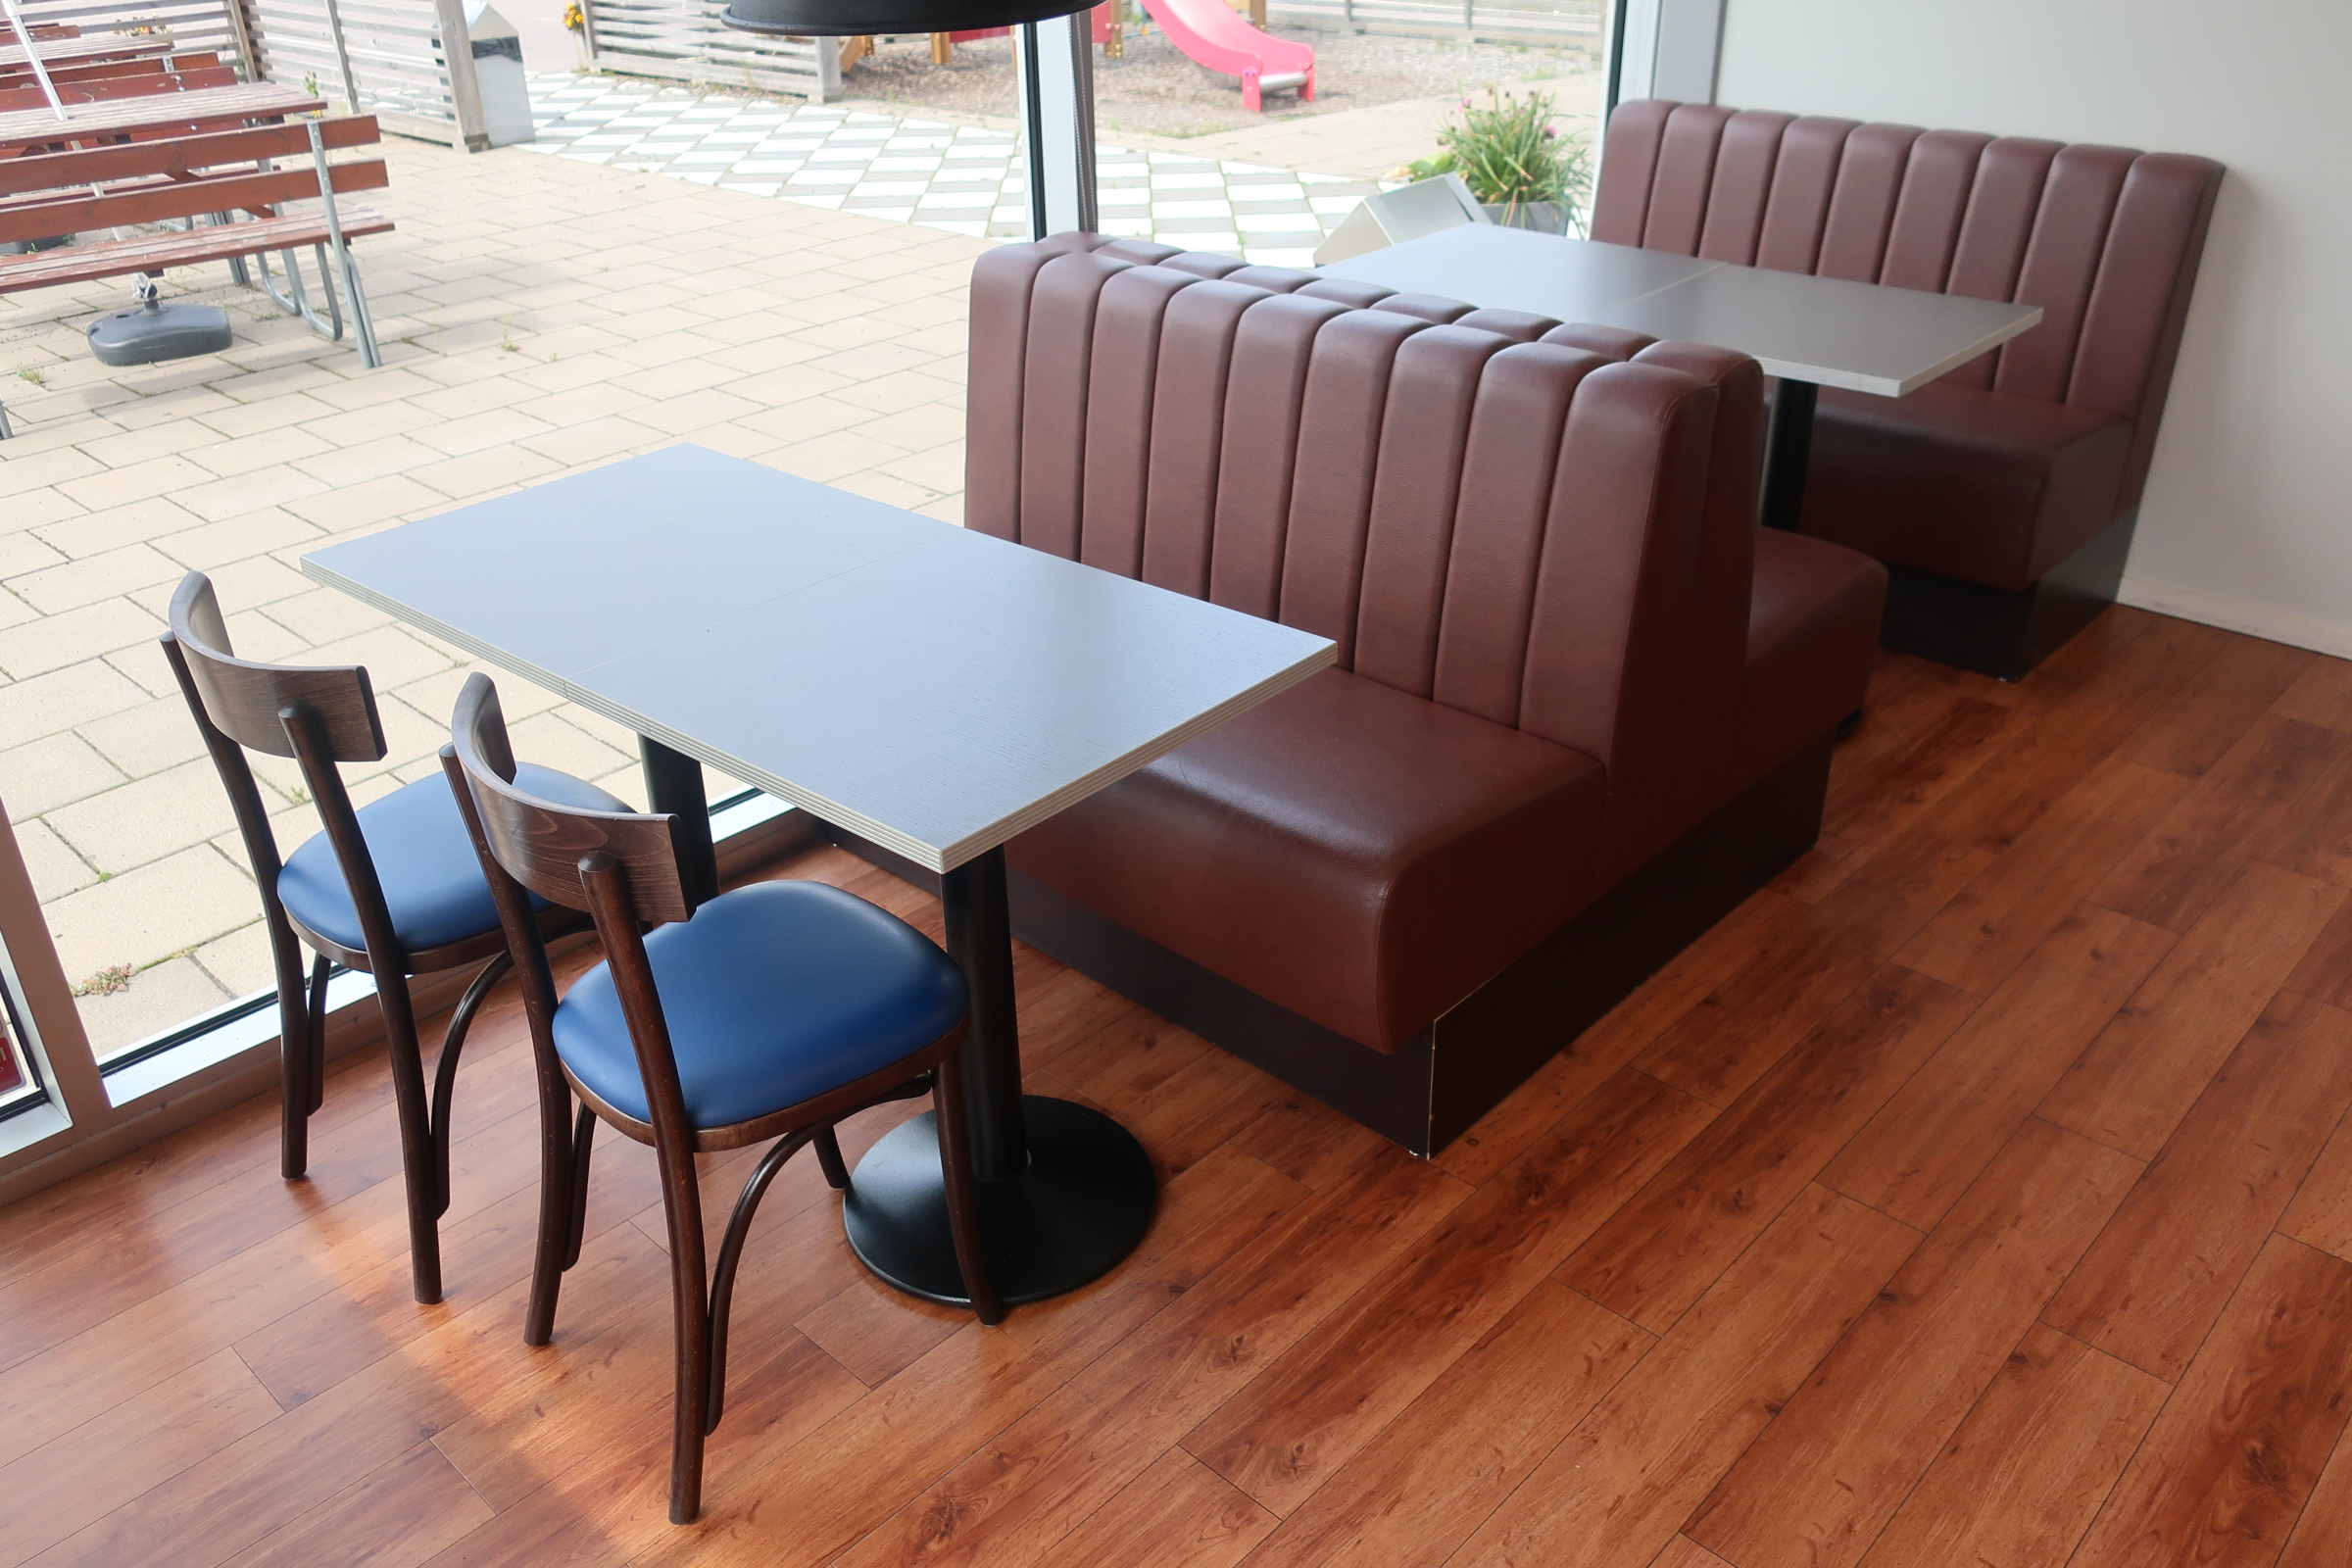 Restaurant Furniture Sofas Tables And Chairs About 12